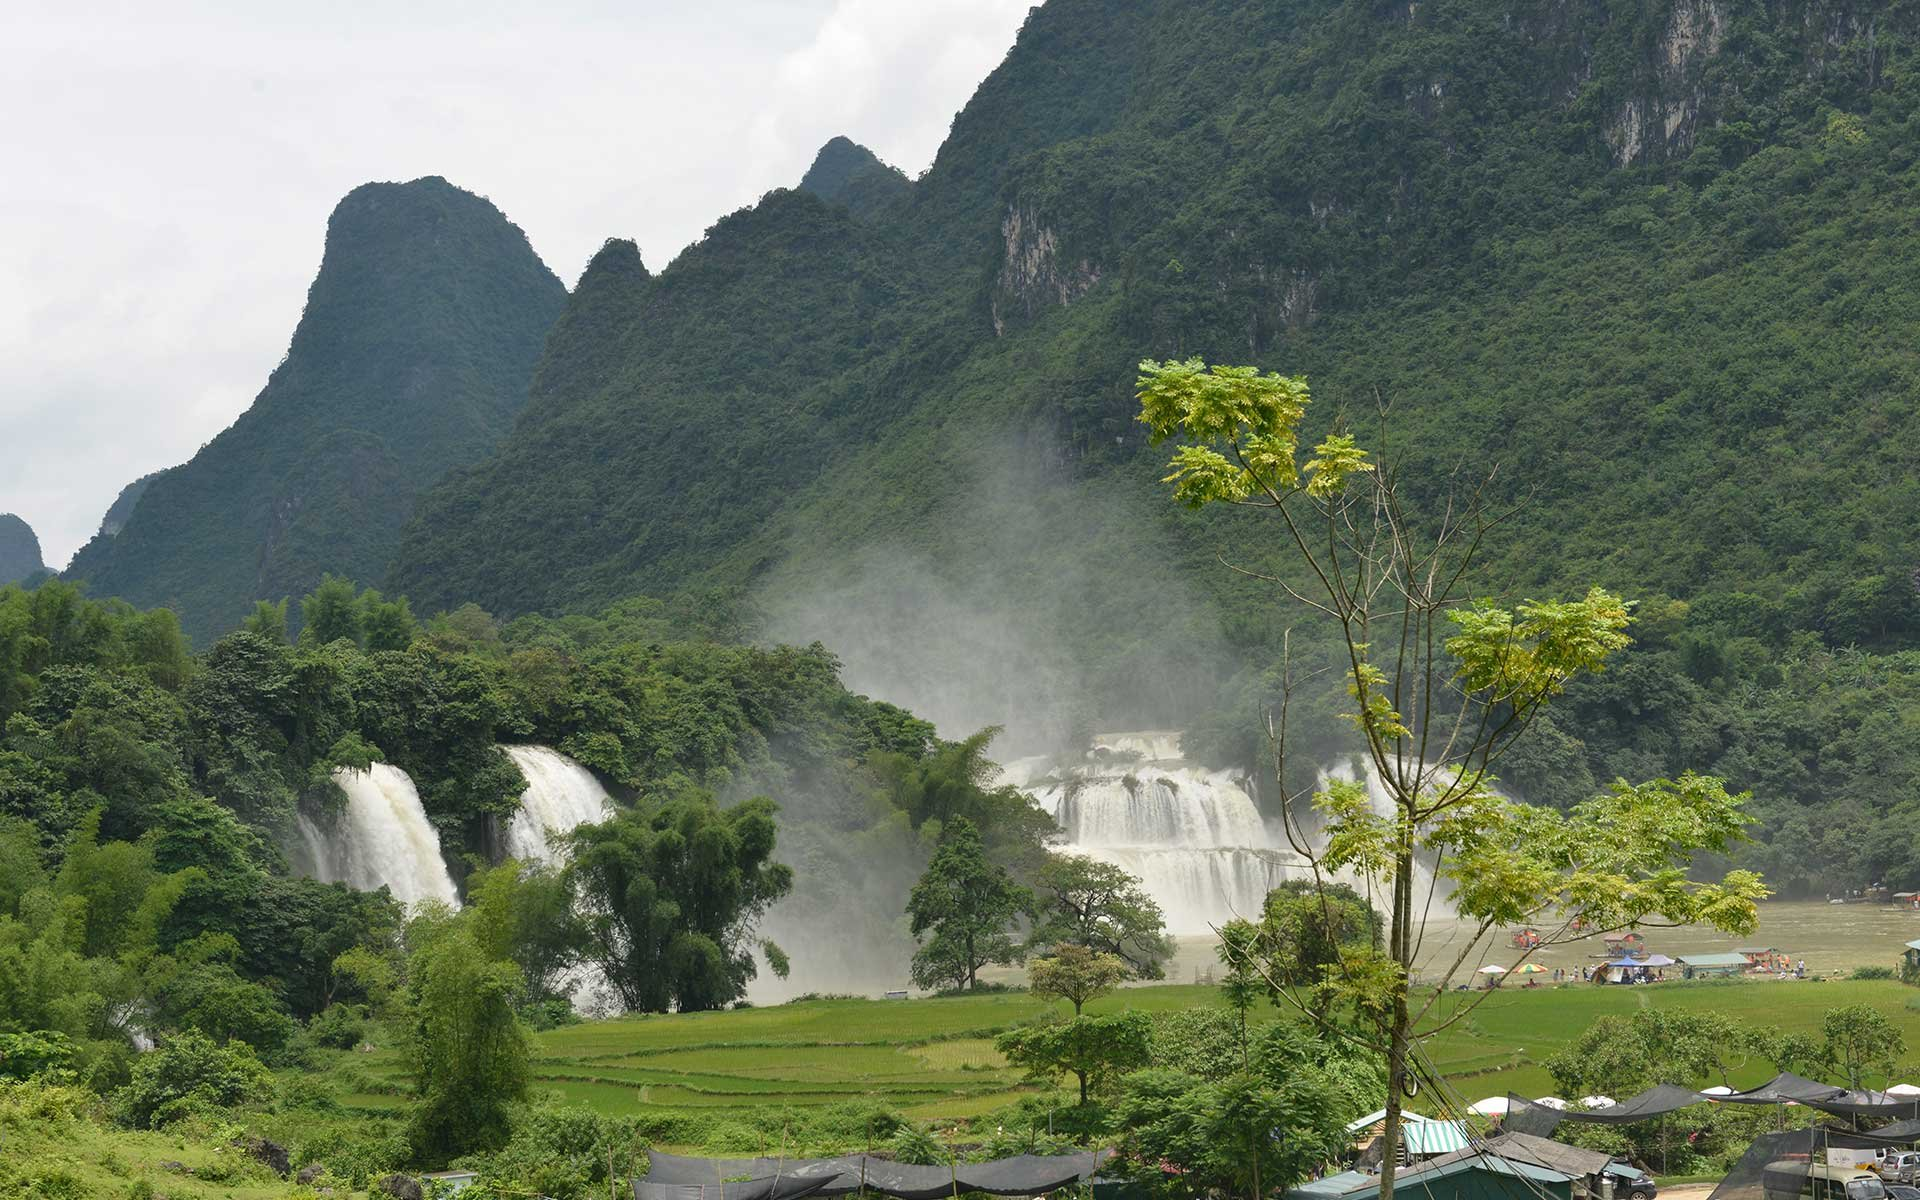 Visit Ban Gioc Waterfall - Experience Homestay in Bac Kan - 3 Days